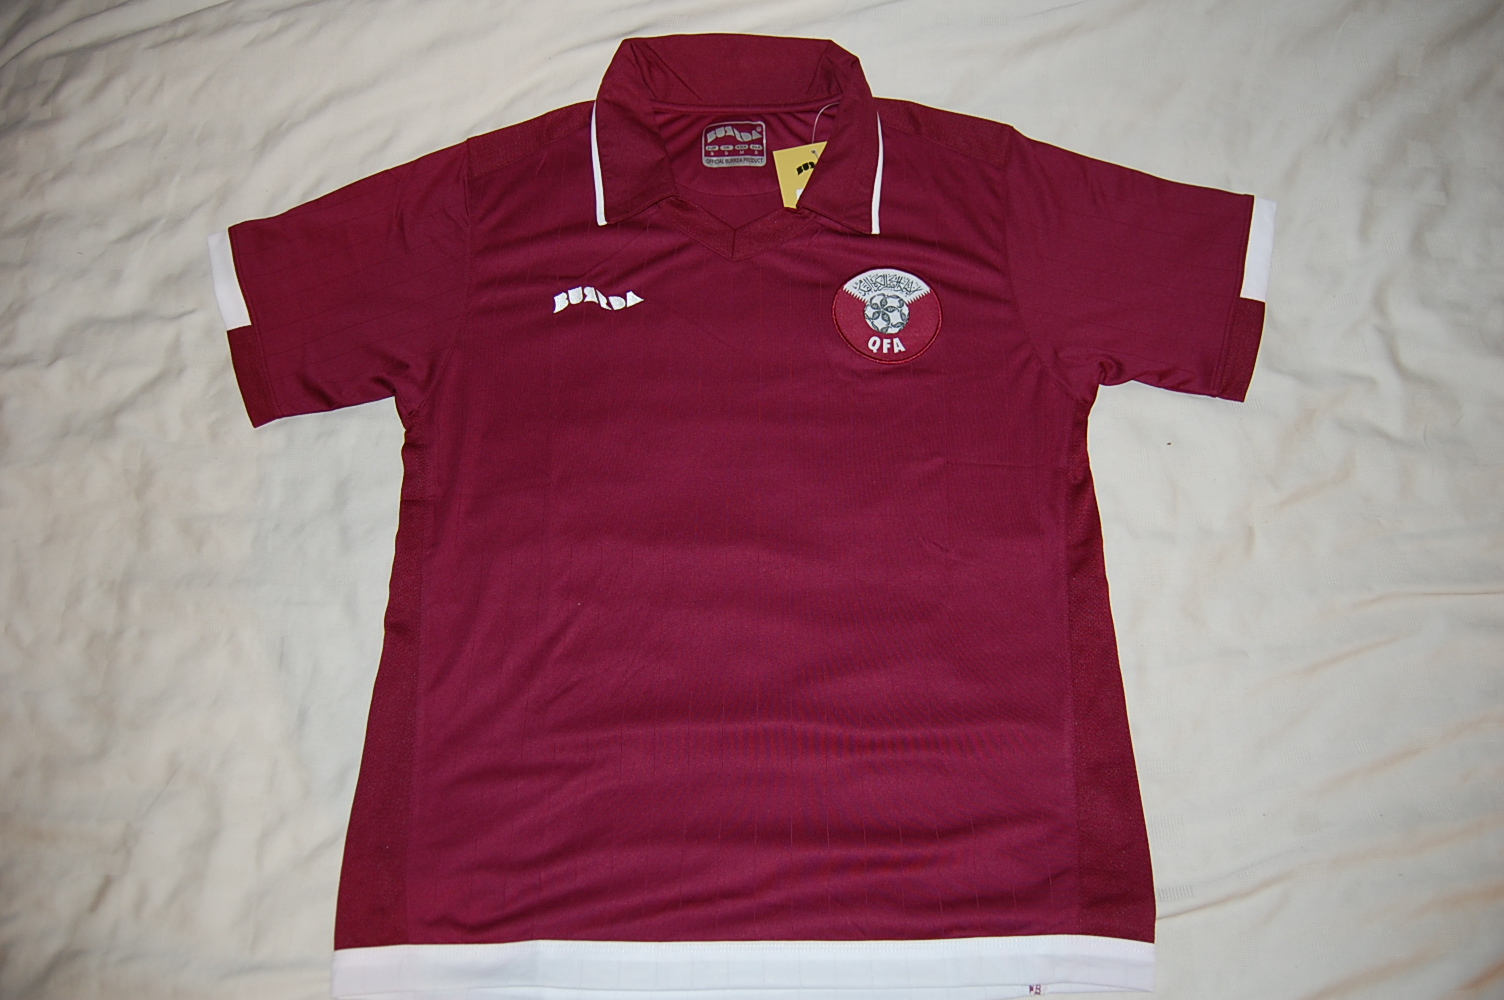 Qatar football shirt.JPG